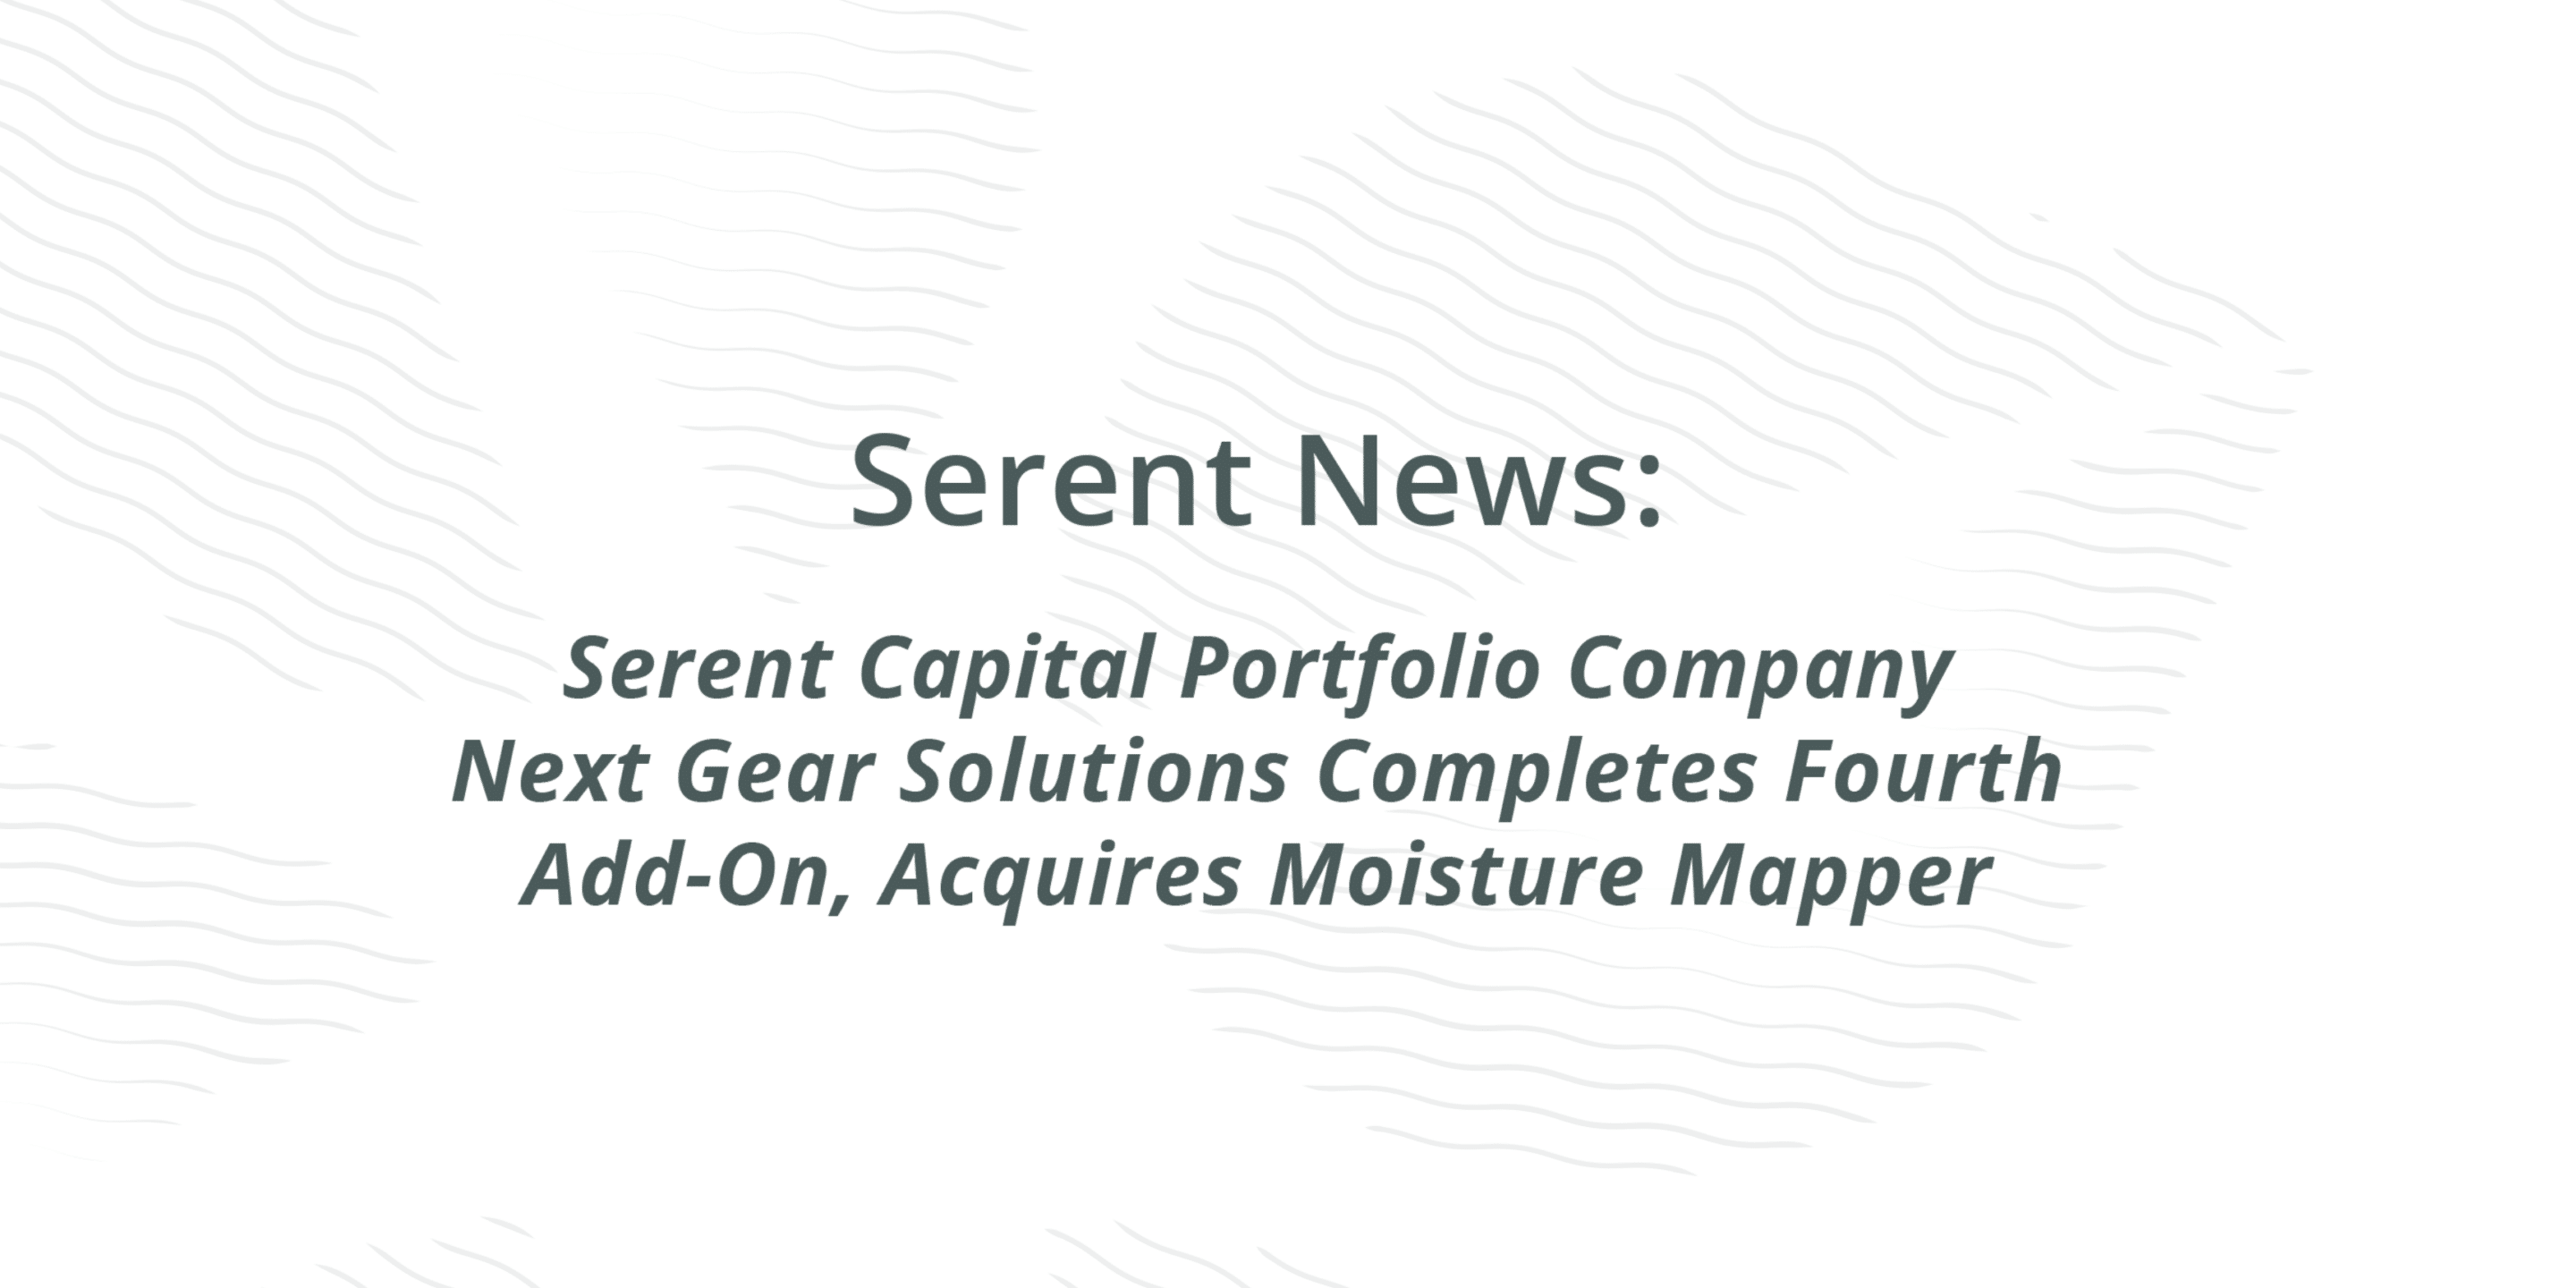 Serent Capital Portfolio Company Next Gear Solutions Completes Fourth Add-On, Acquires Moisture Mapper